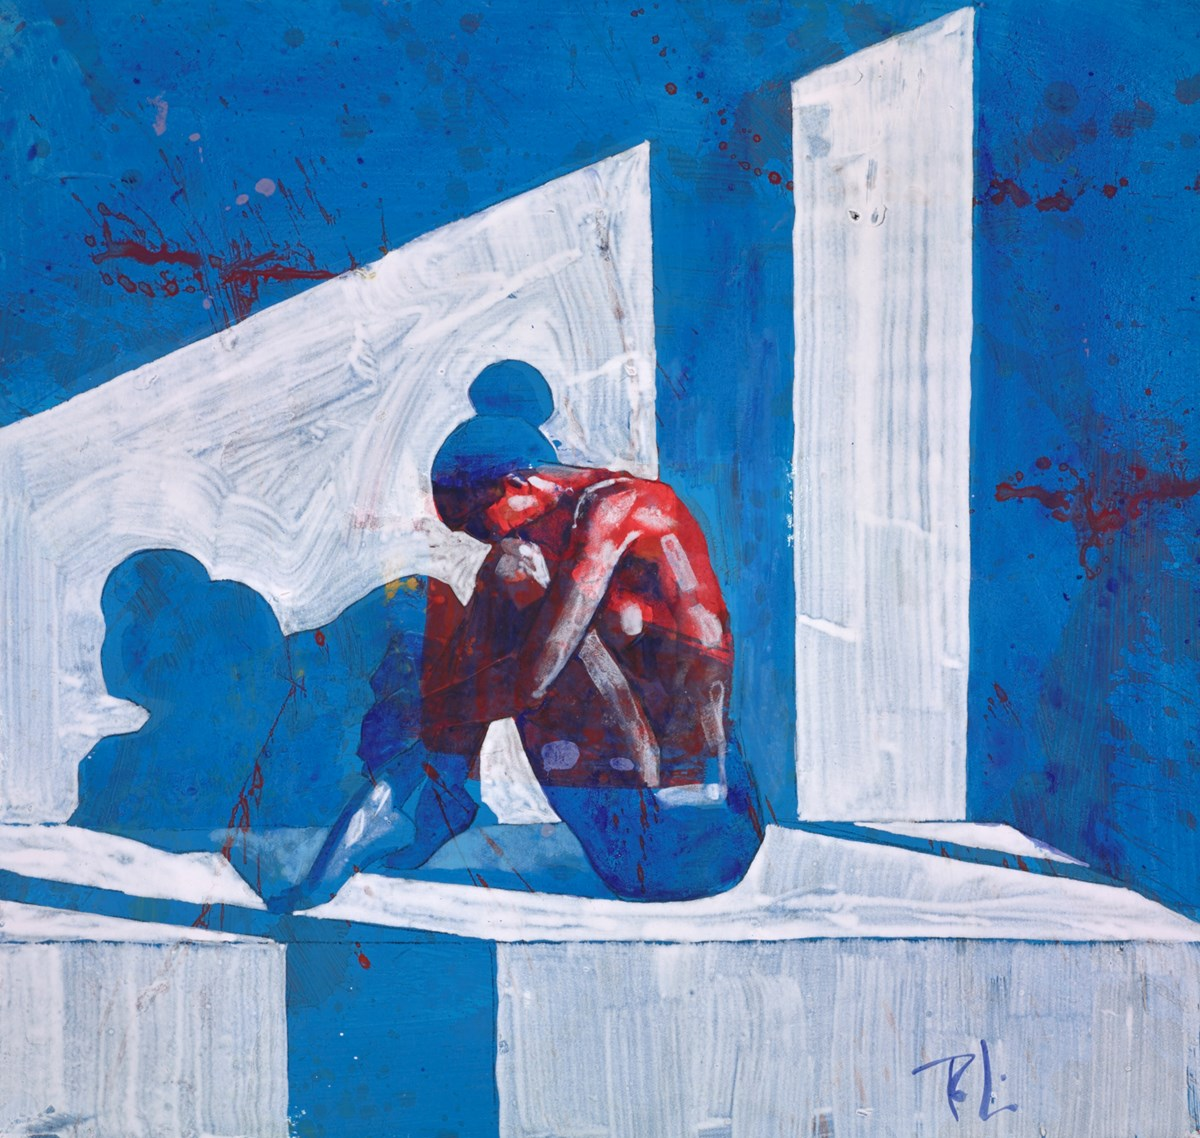 Lost in Thought by toby mulligan -  sized 22x21 inches. Available from Whitewall Galleries